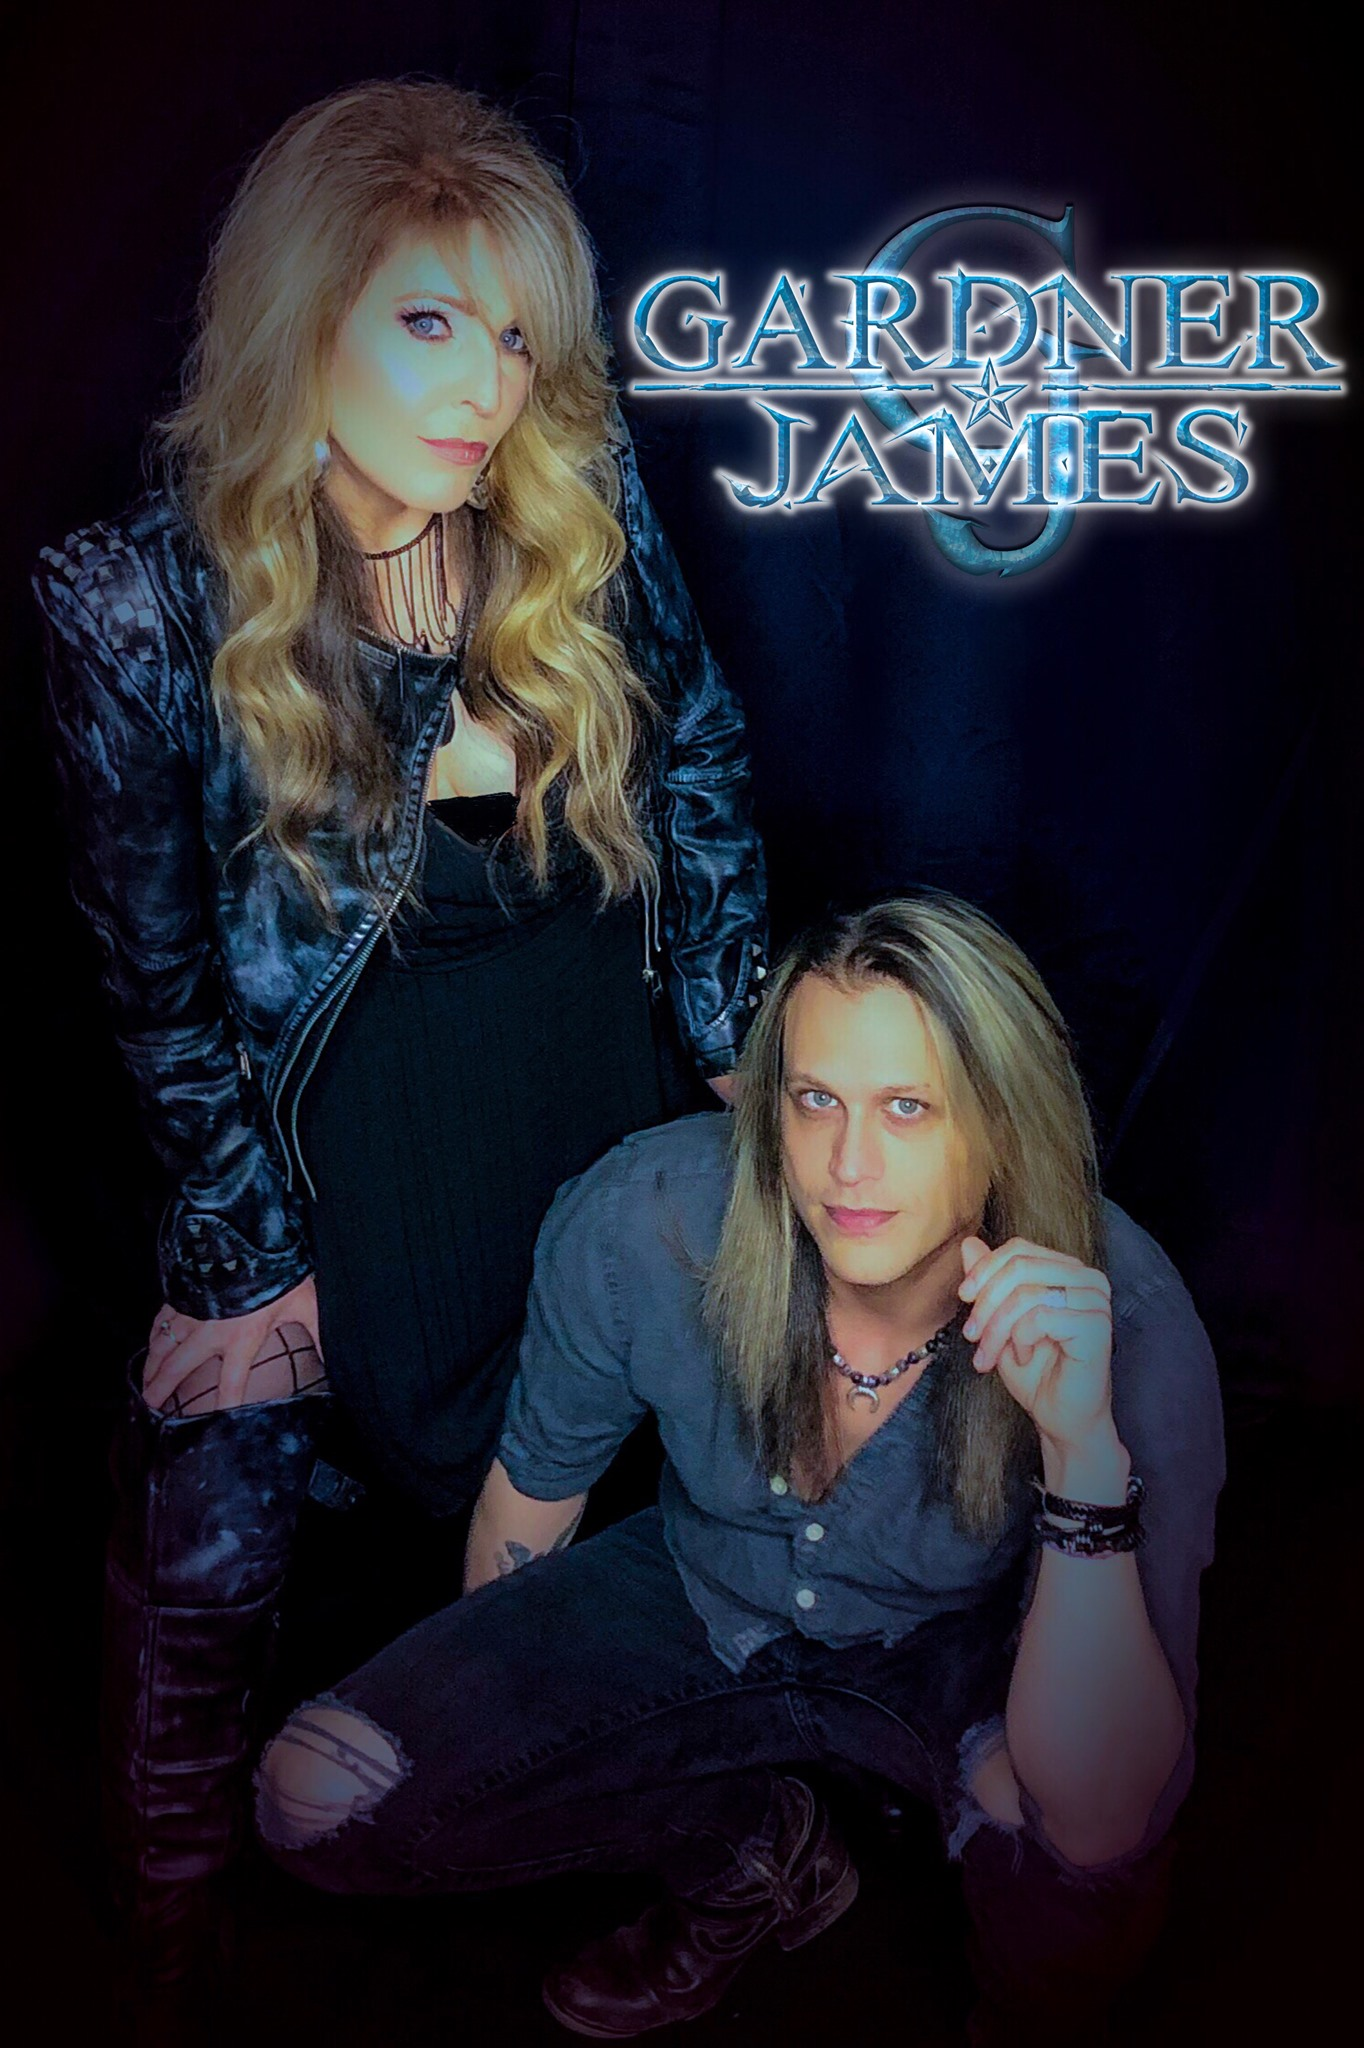 Interview with Janet Gardner and Justin James show art